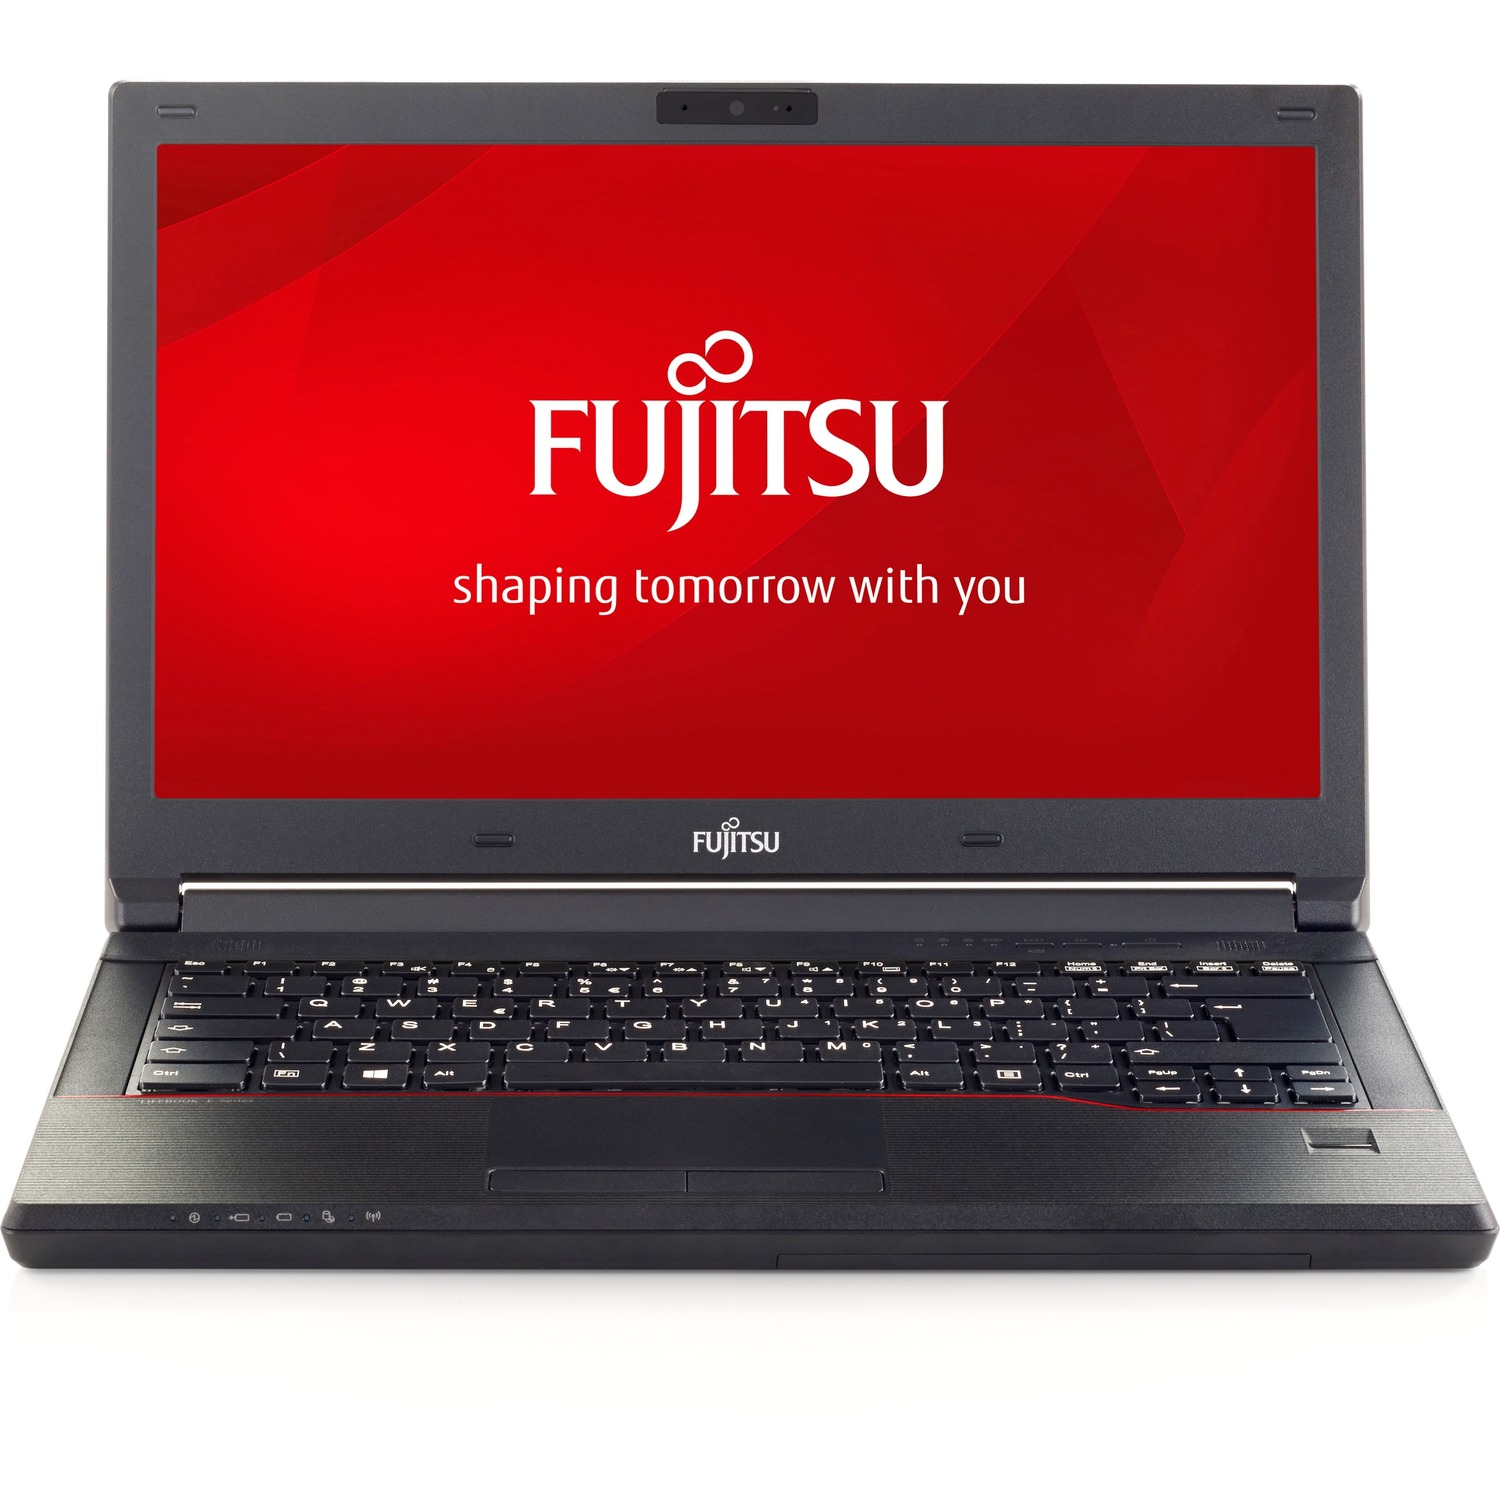 Fujitsu LIFEBOOK E547 35.6 cm 14inch LCD Notebook - Intel Core i3 7th Gen i3-7100U Dual-core 2 Core 2.40 GHz - 4 GB DDR4 SDRAM - 500 GB HDD - Windows 10 Pro 64-bi